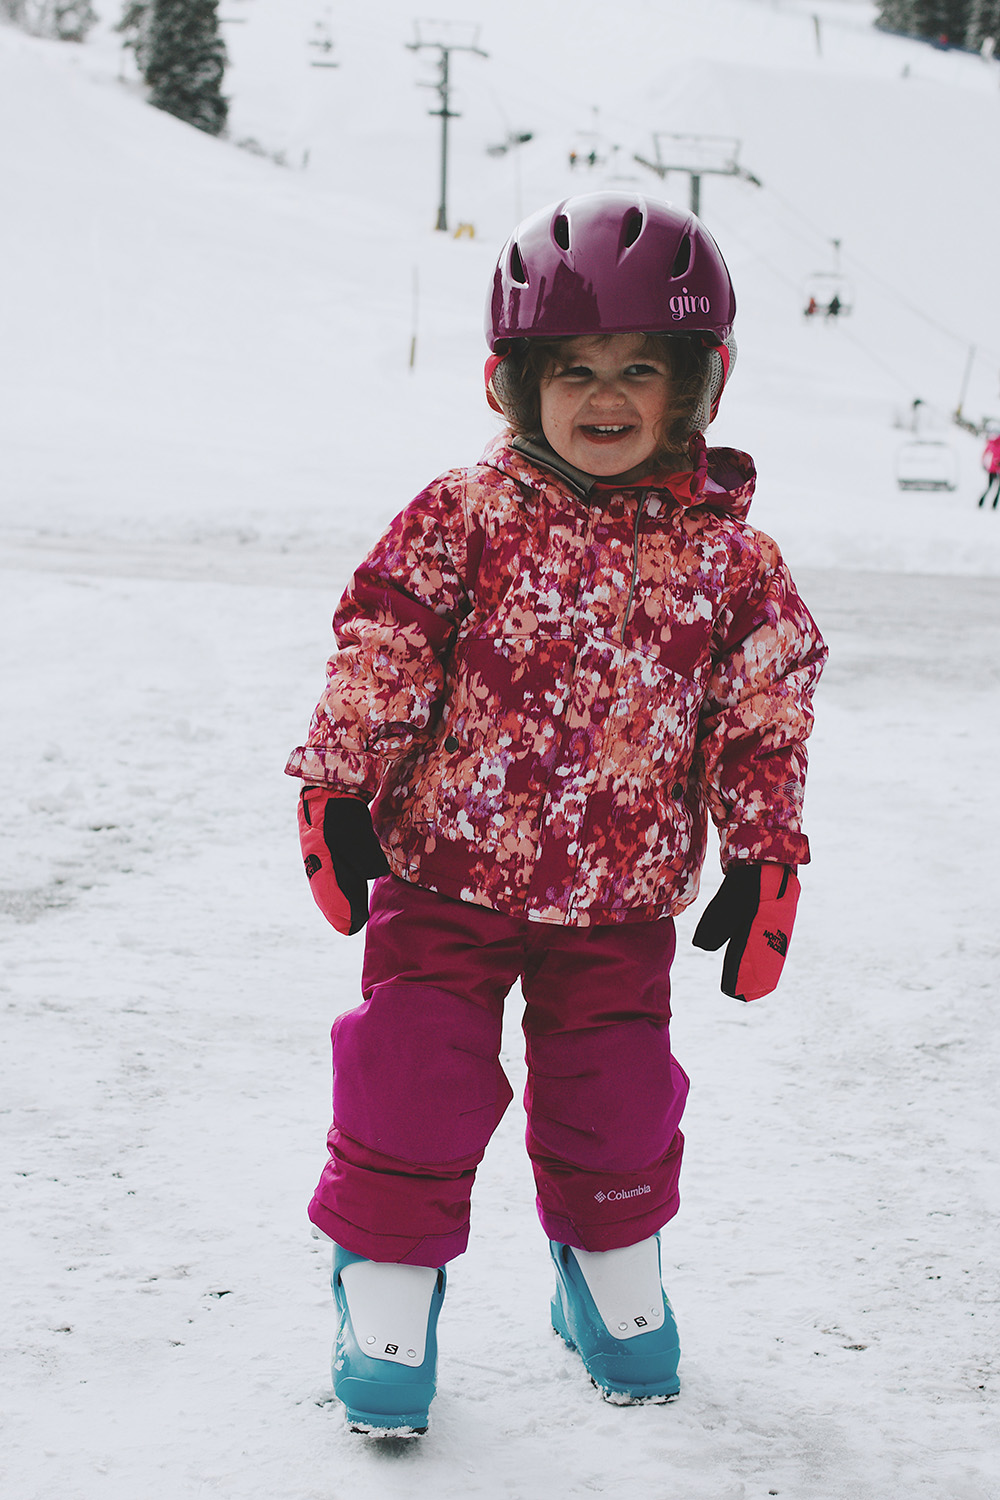 A child smiles for the camera ready to go skiing at Copper Mountain in Summit County, Colorado